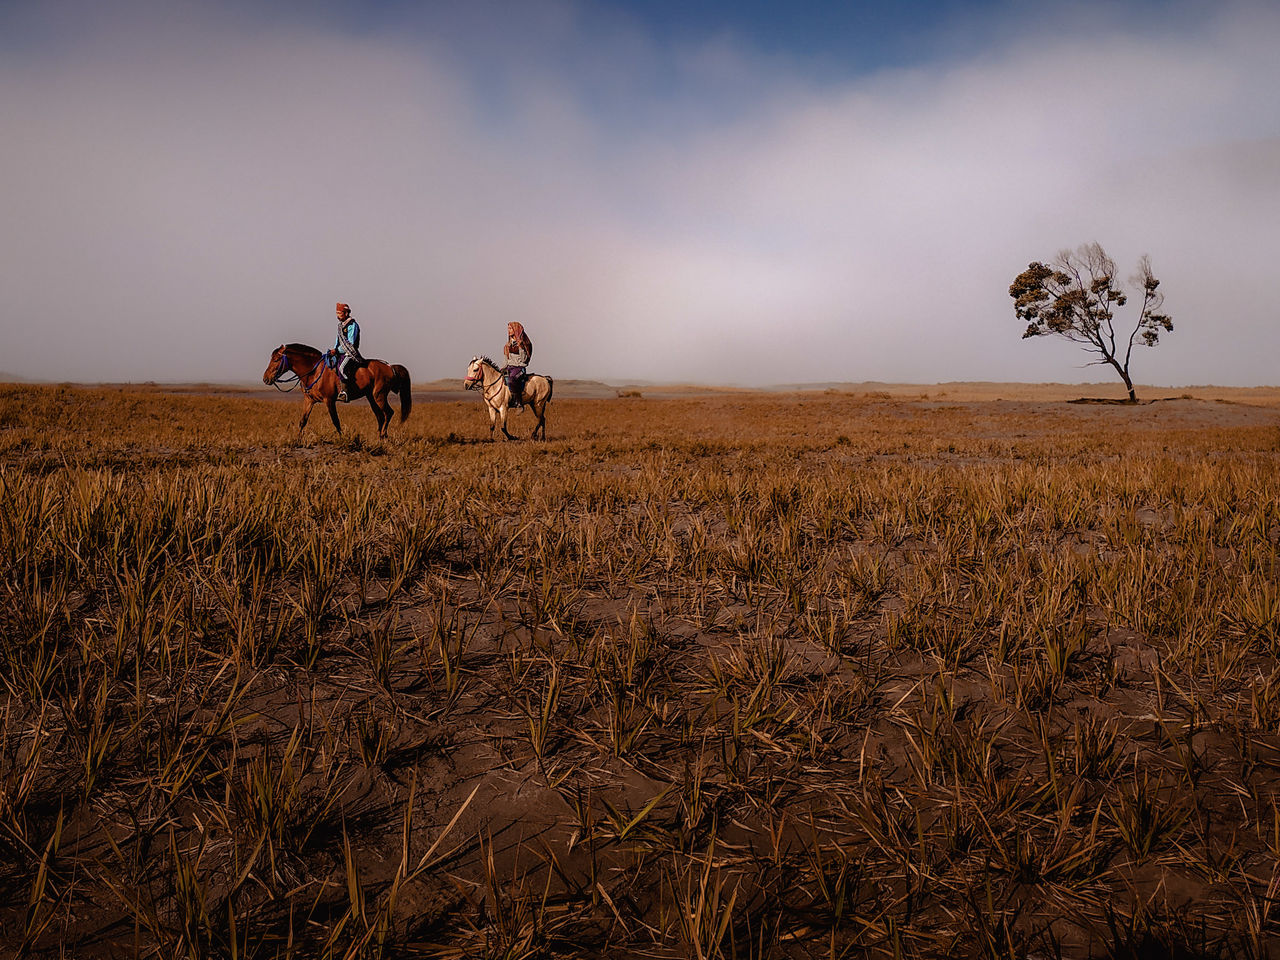 PEOPLE RIDING HORSE ON FIELD